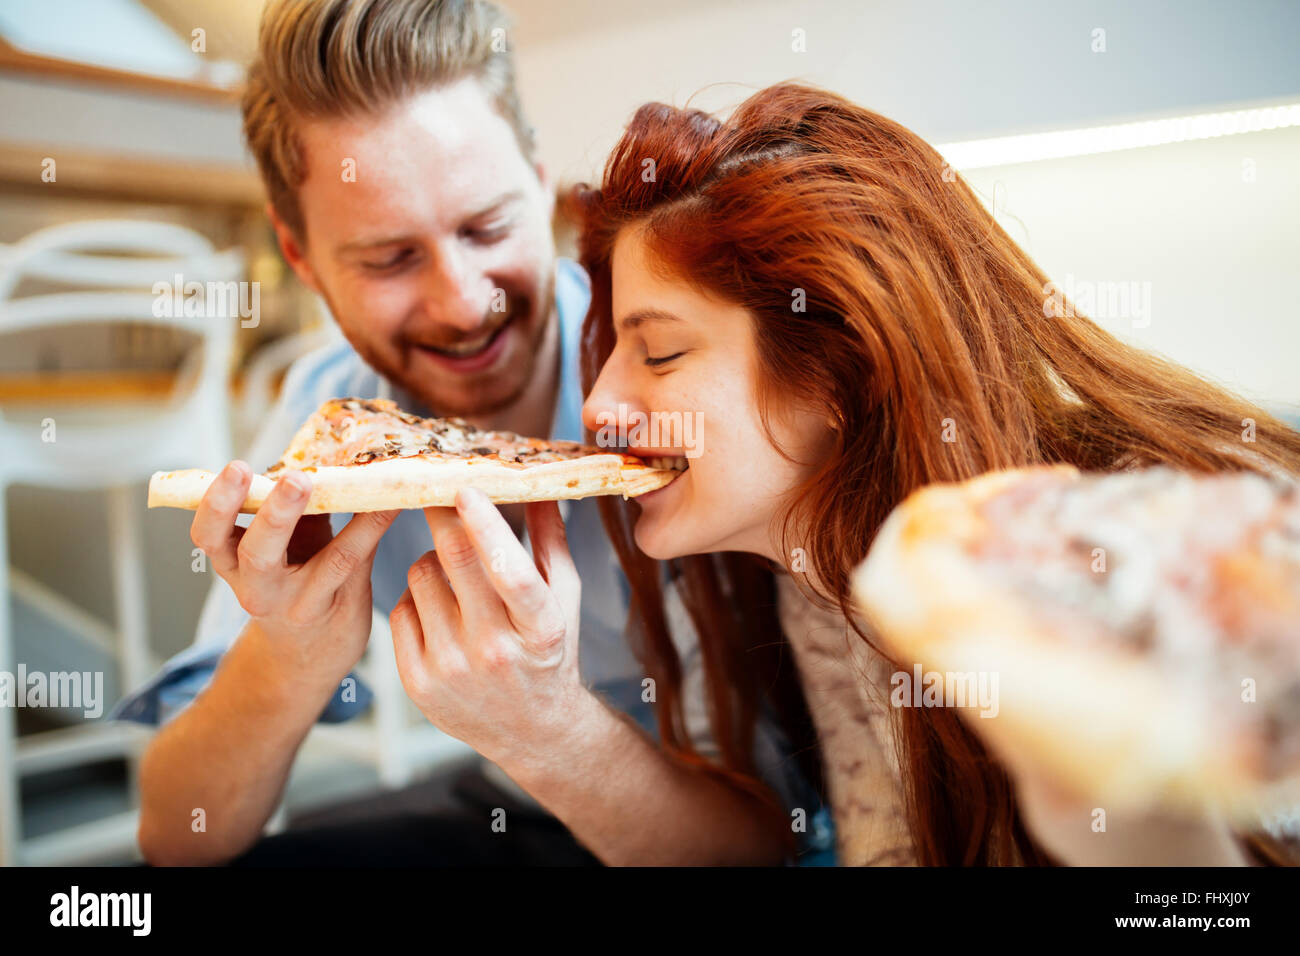 Couple sharing pizza and eating together happily Stock Photo